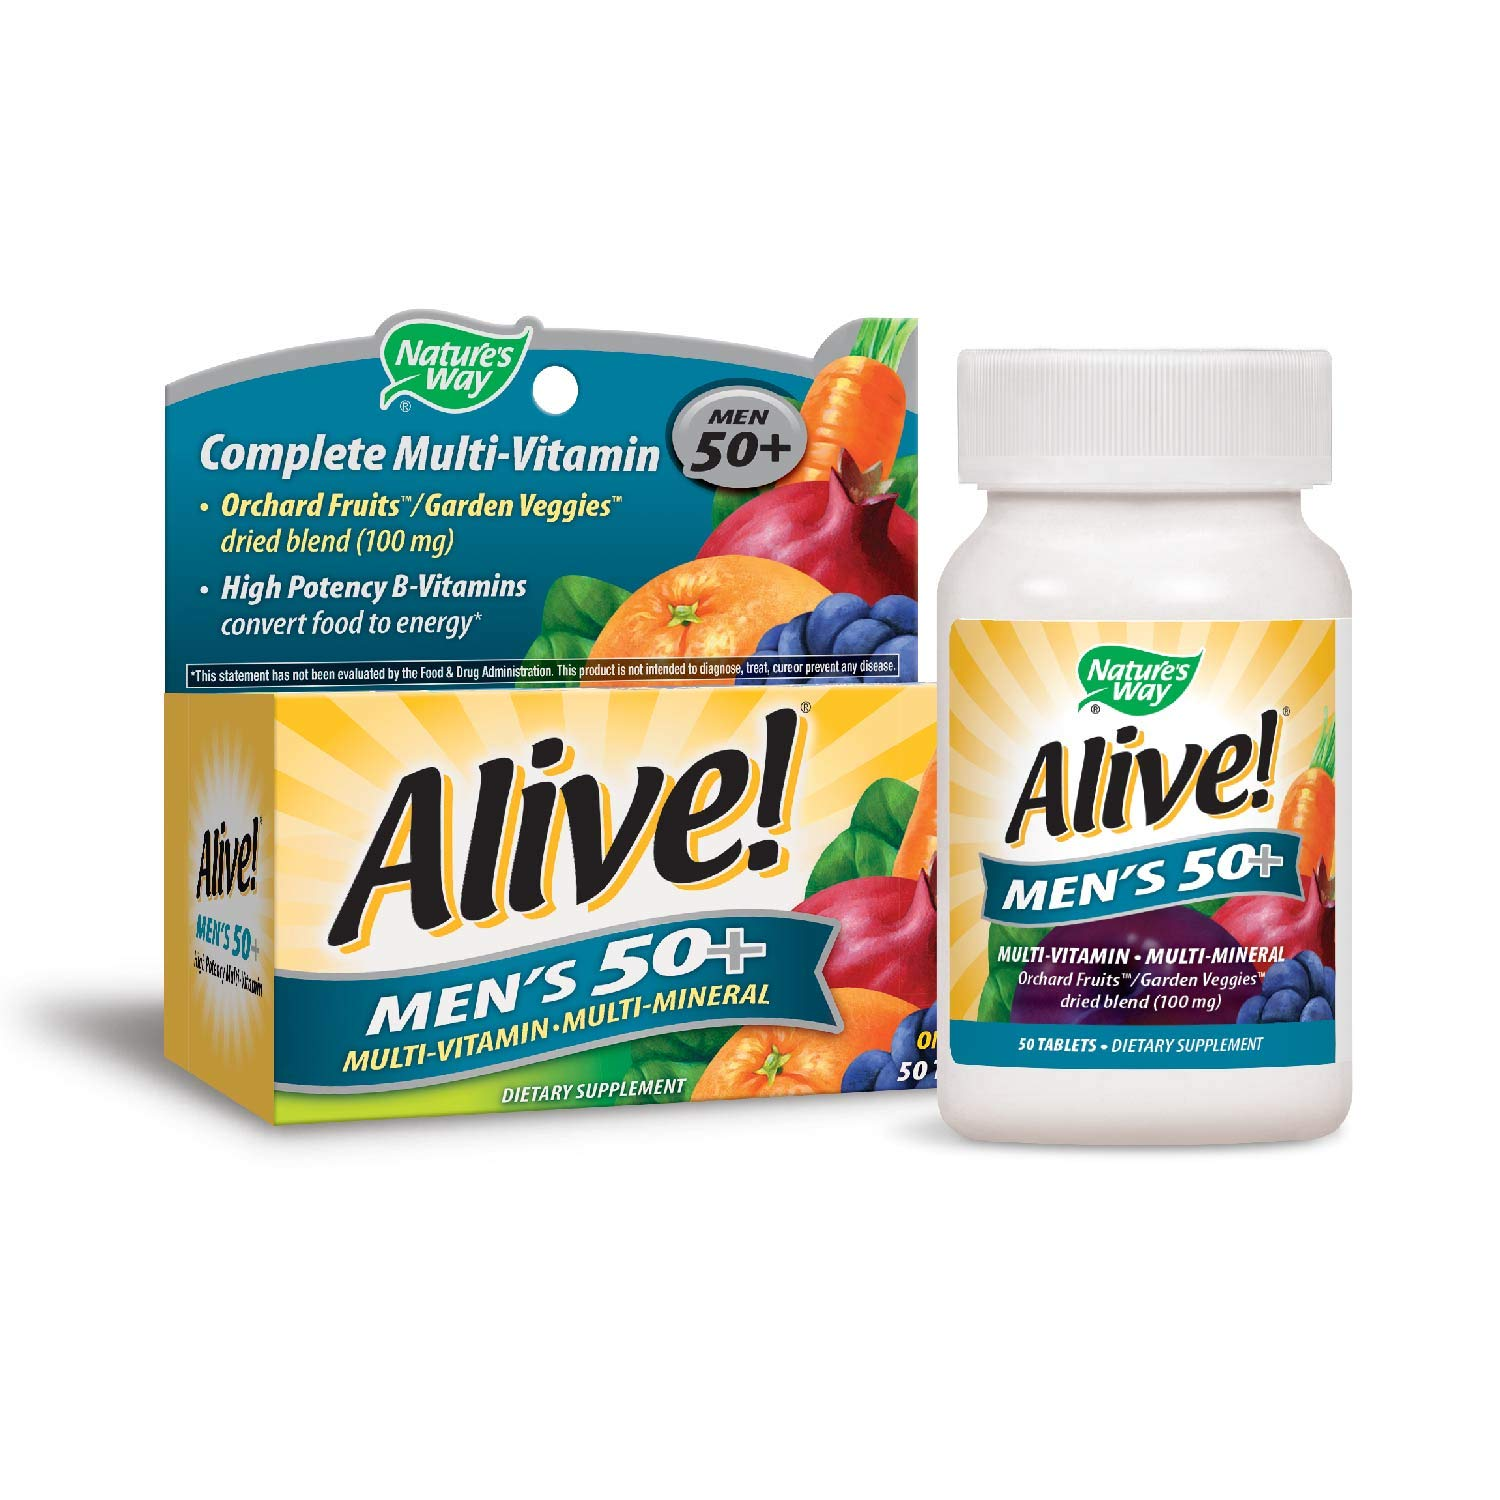 Nature's Way Alive Men's 50 Plus Multivitamin & Mineral Tablets